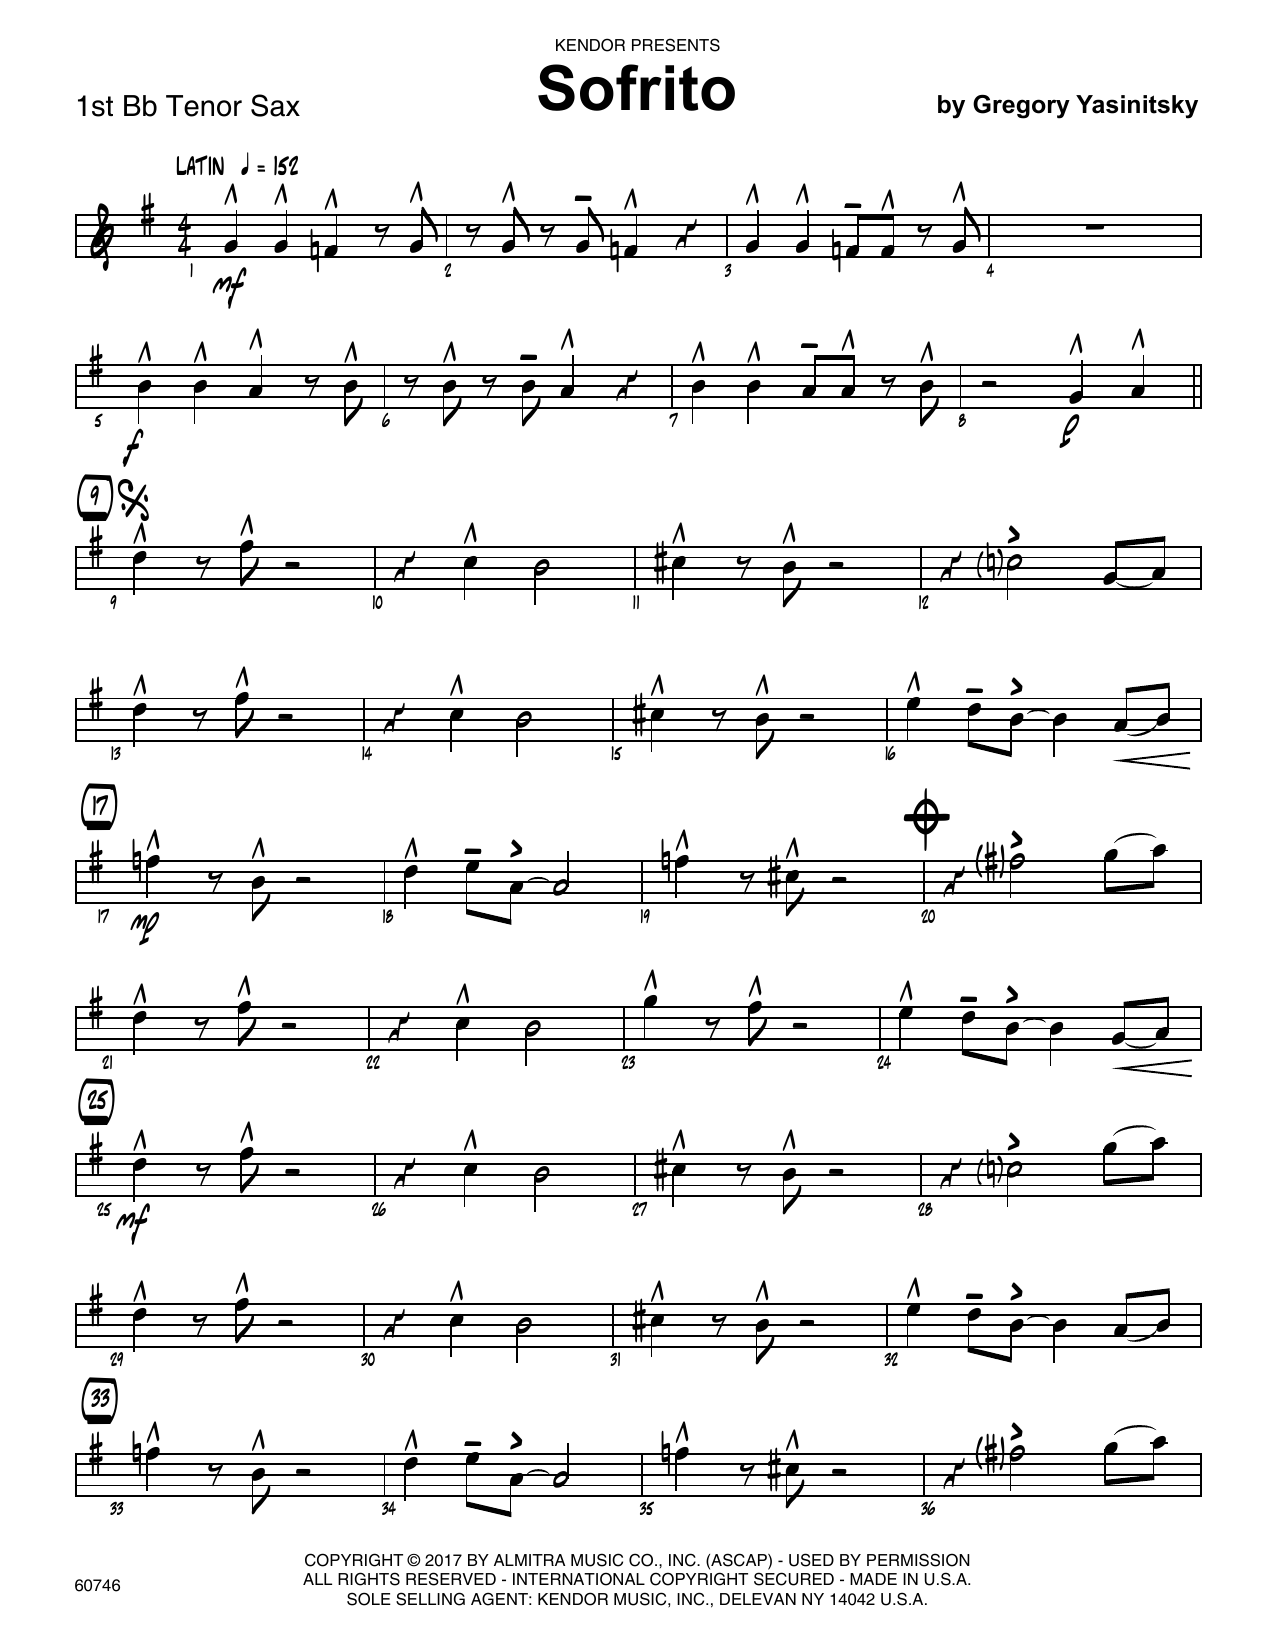 Sofrito - 1st Tenor Saxophone Sheet Music